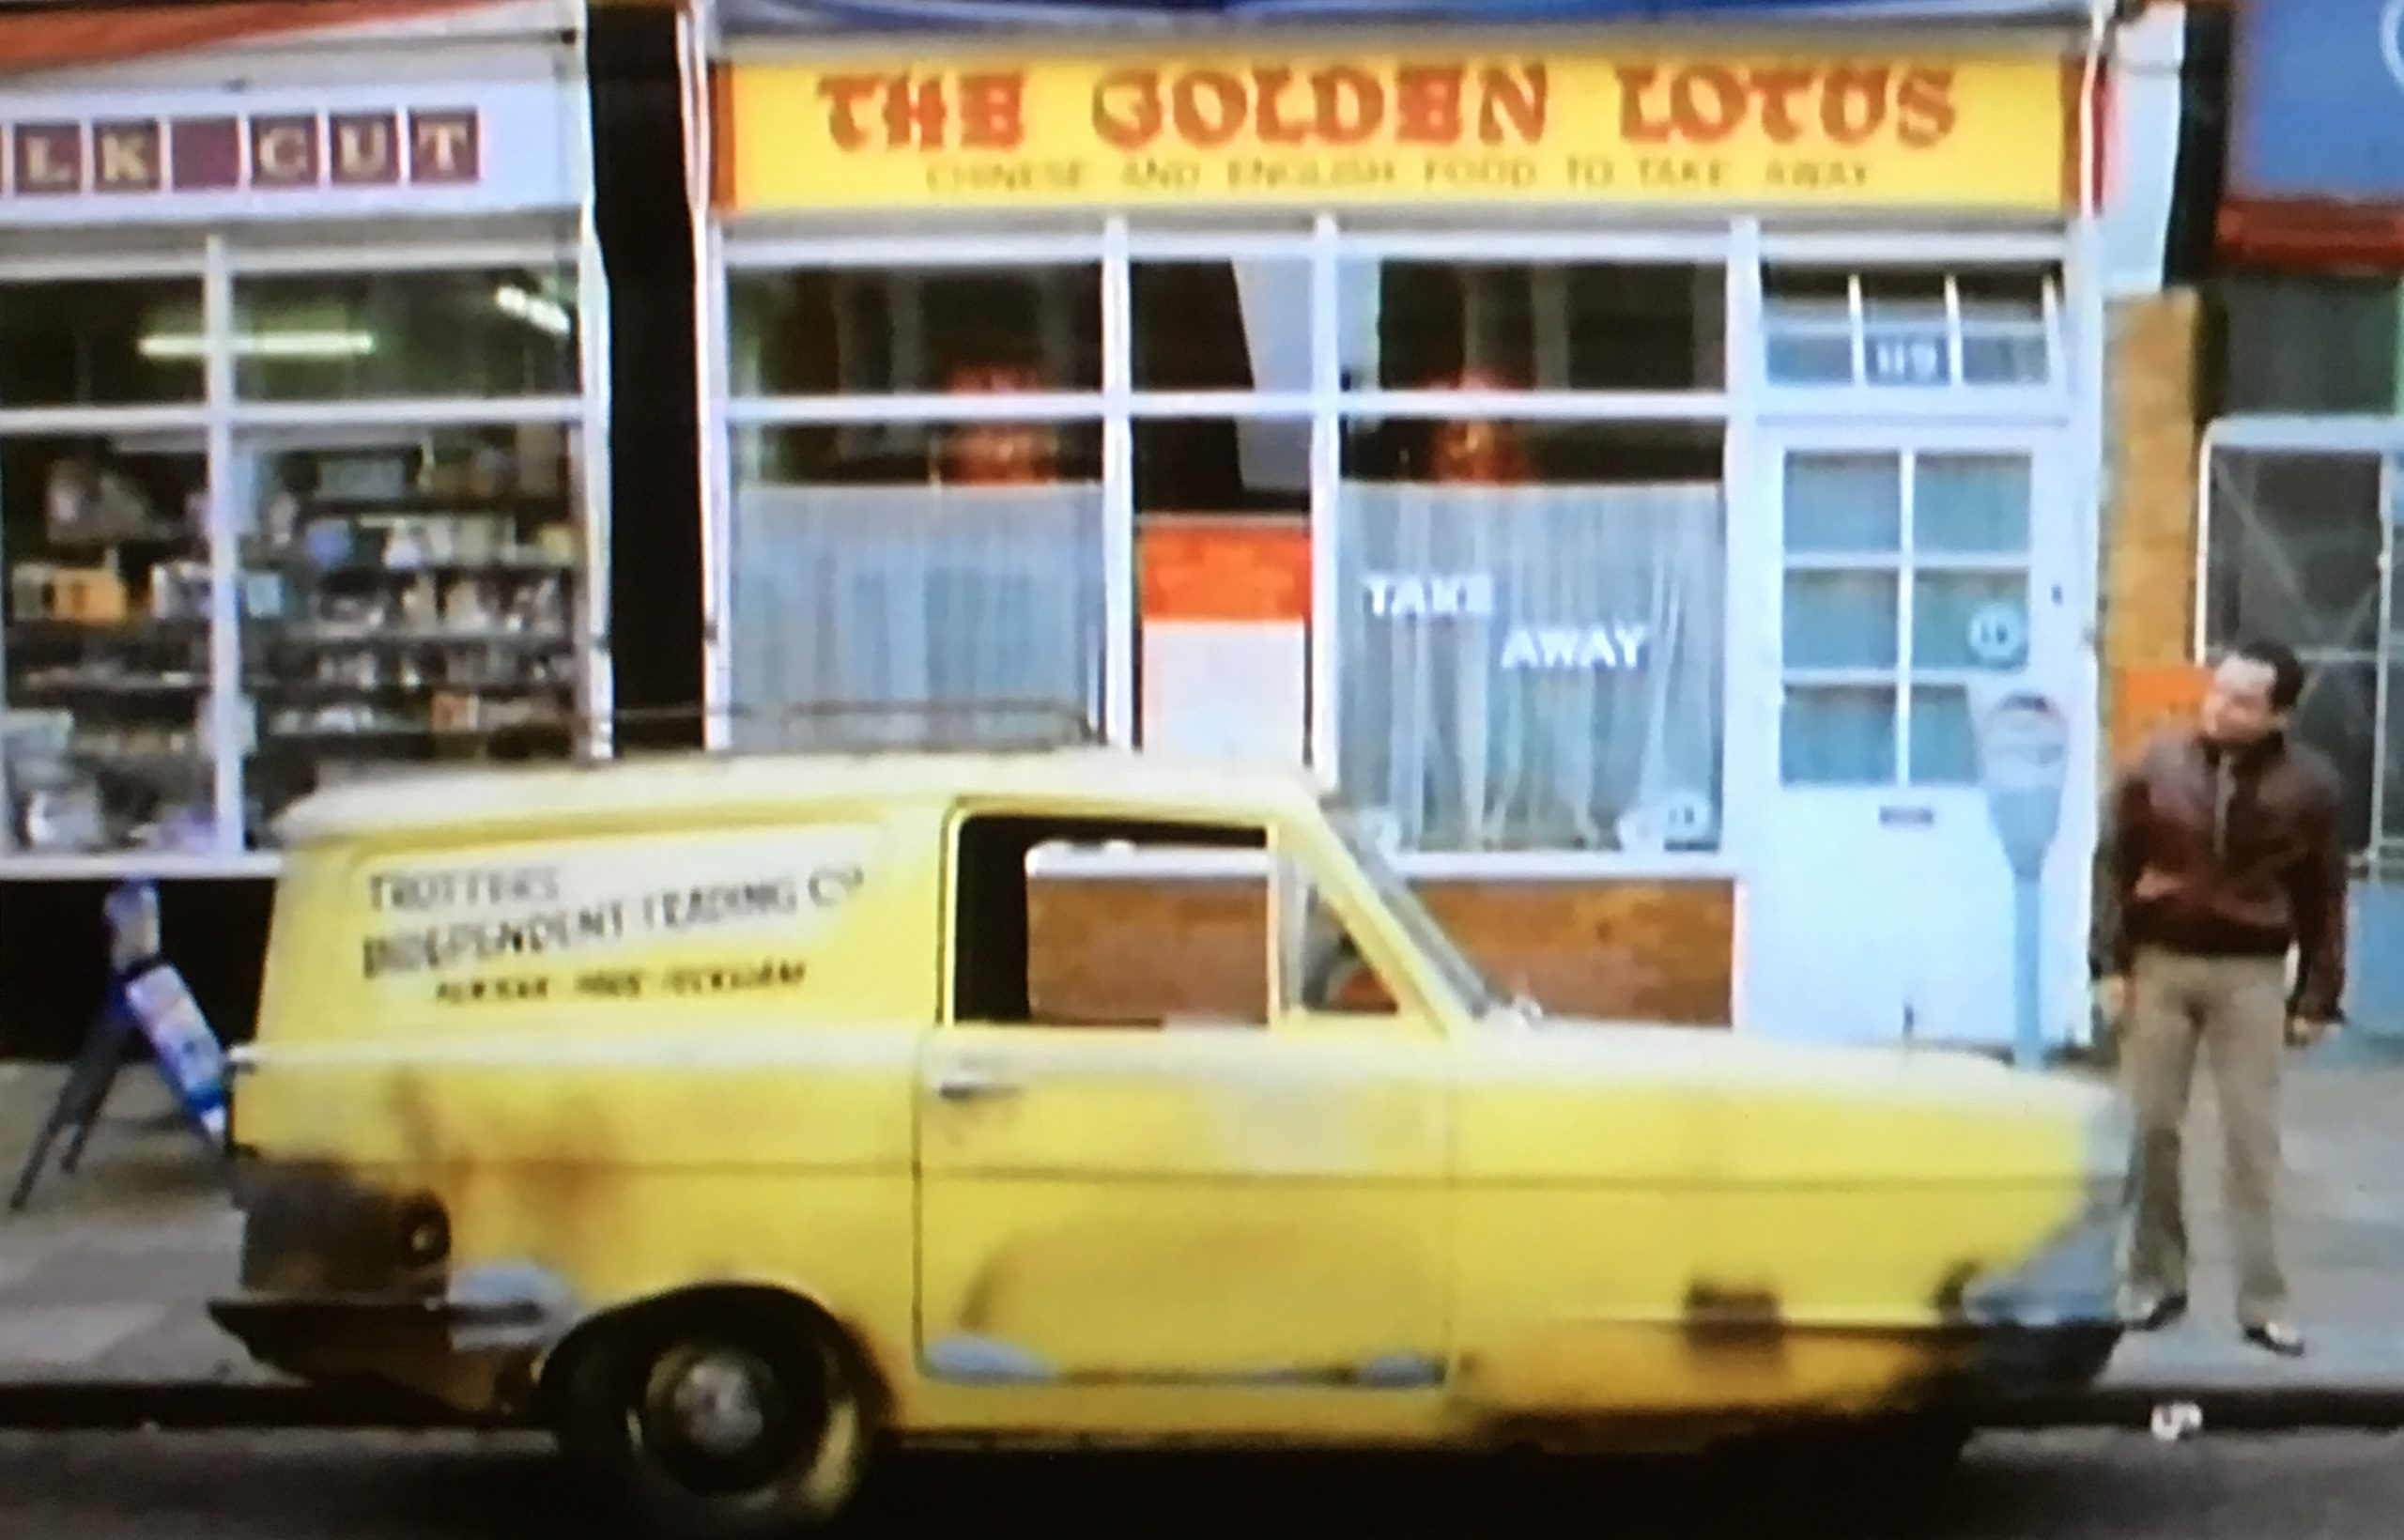 Del Boy's van outside the Golden Lotus in the Yellow Peril Only Fools and Horses